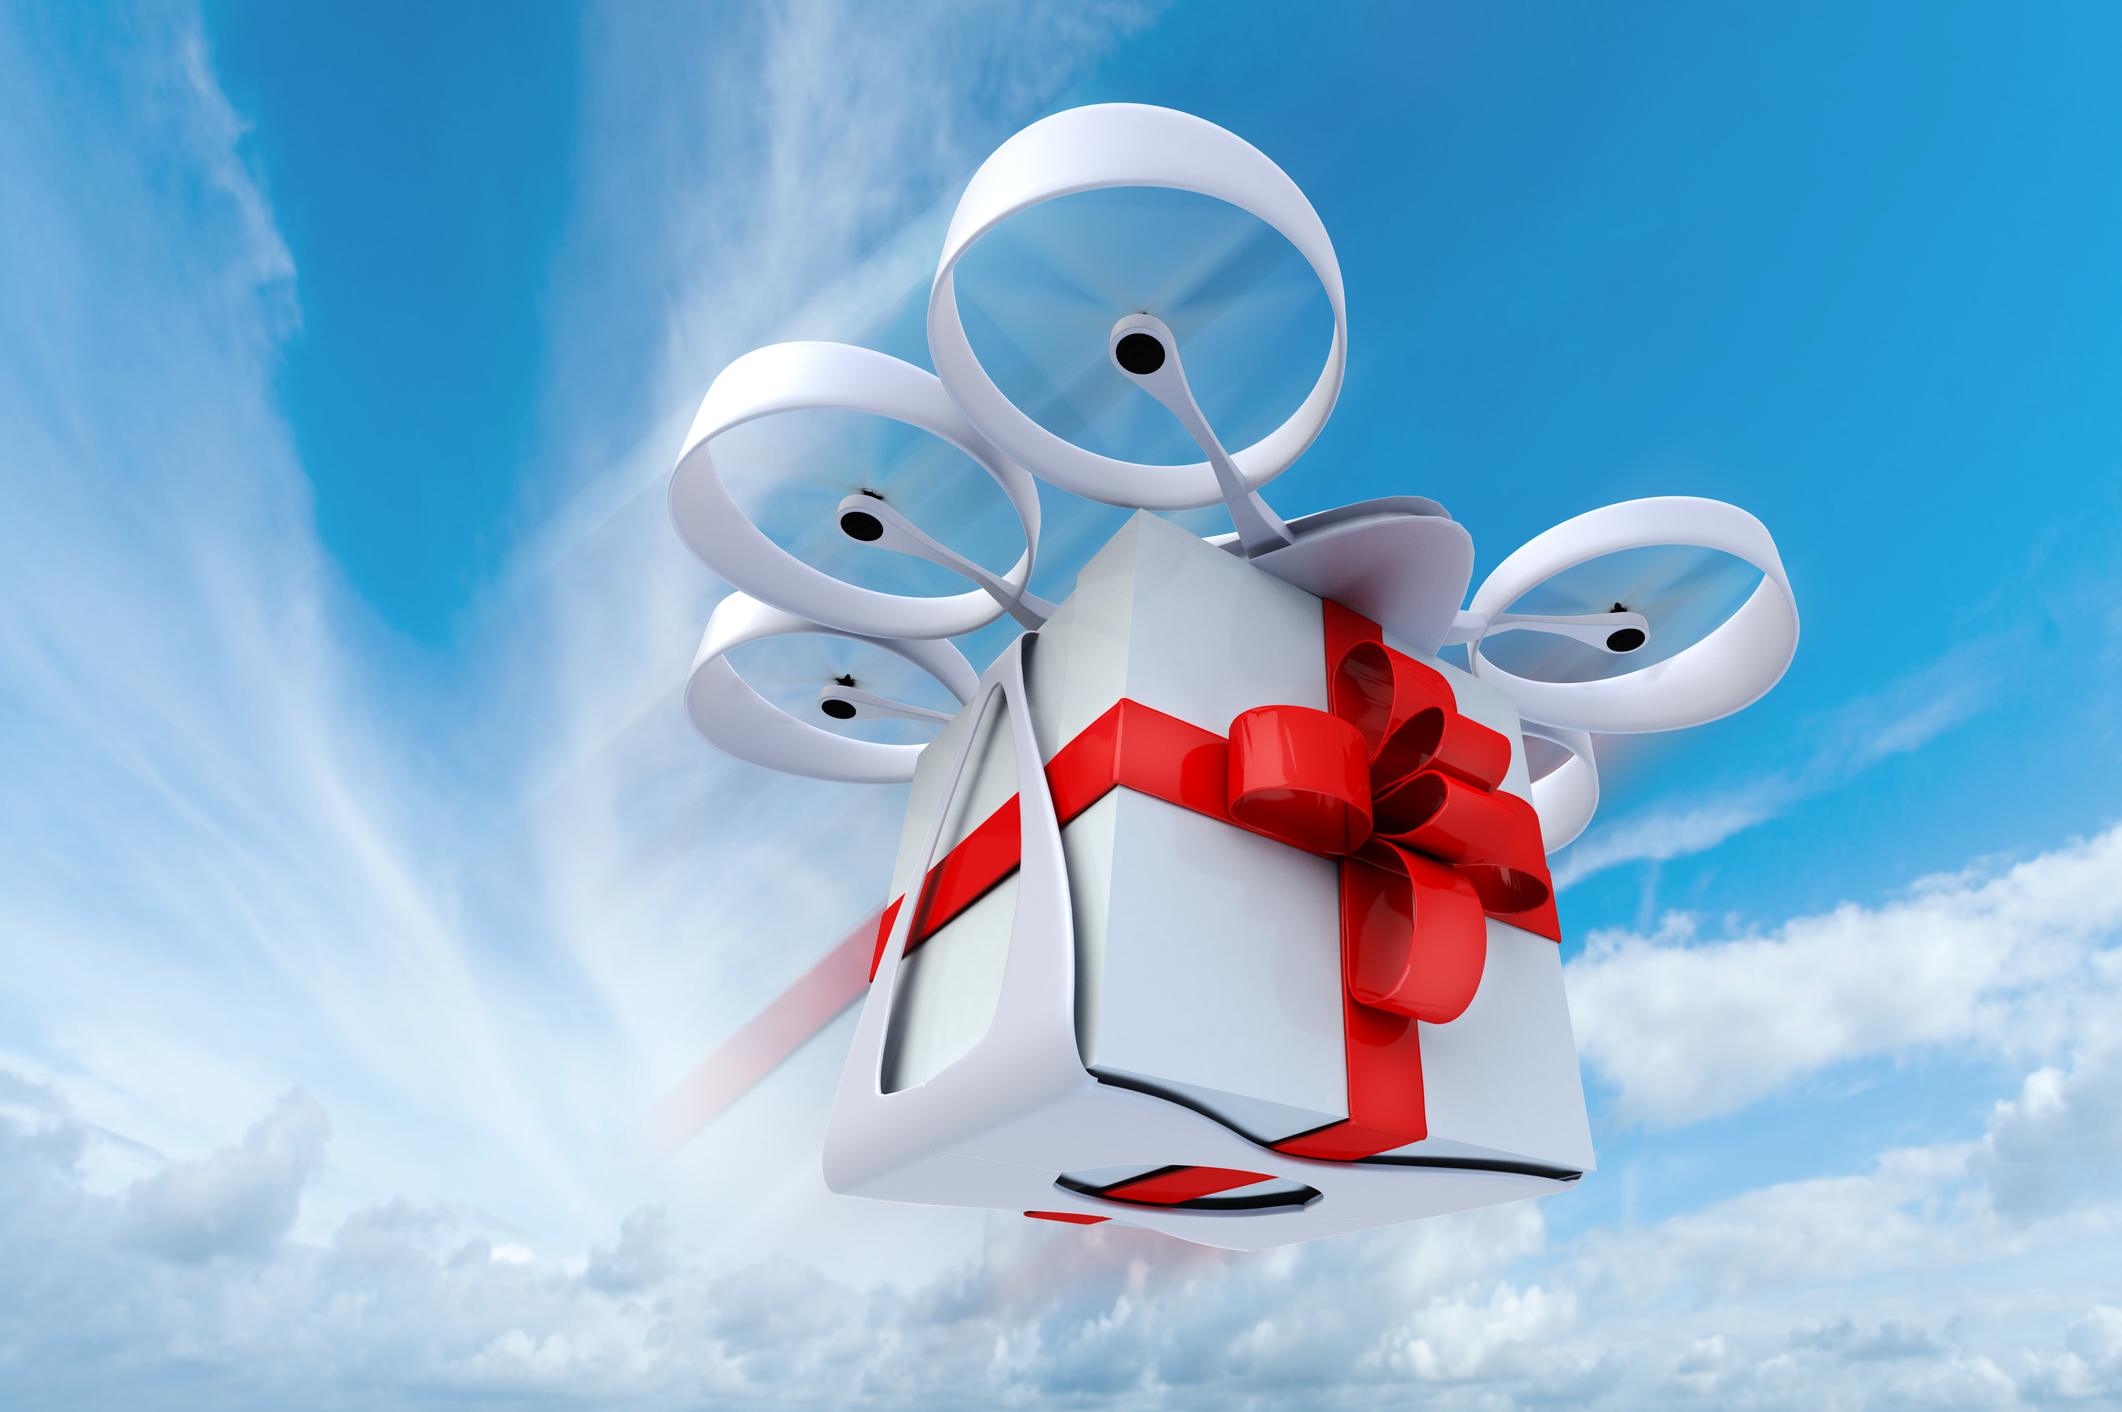 25 Drone Birthday Gift Ideas For The Lover In Your Life